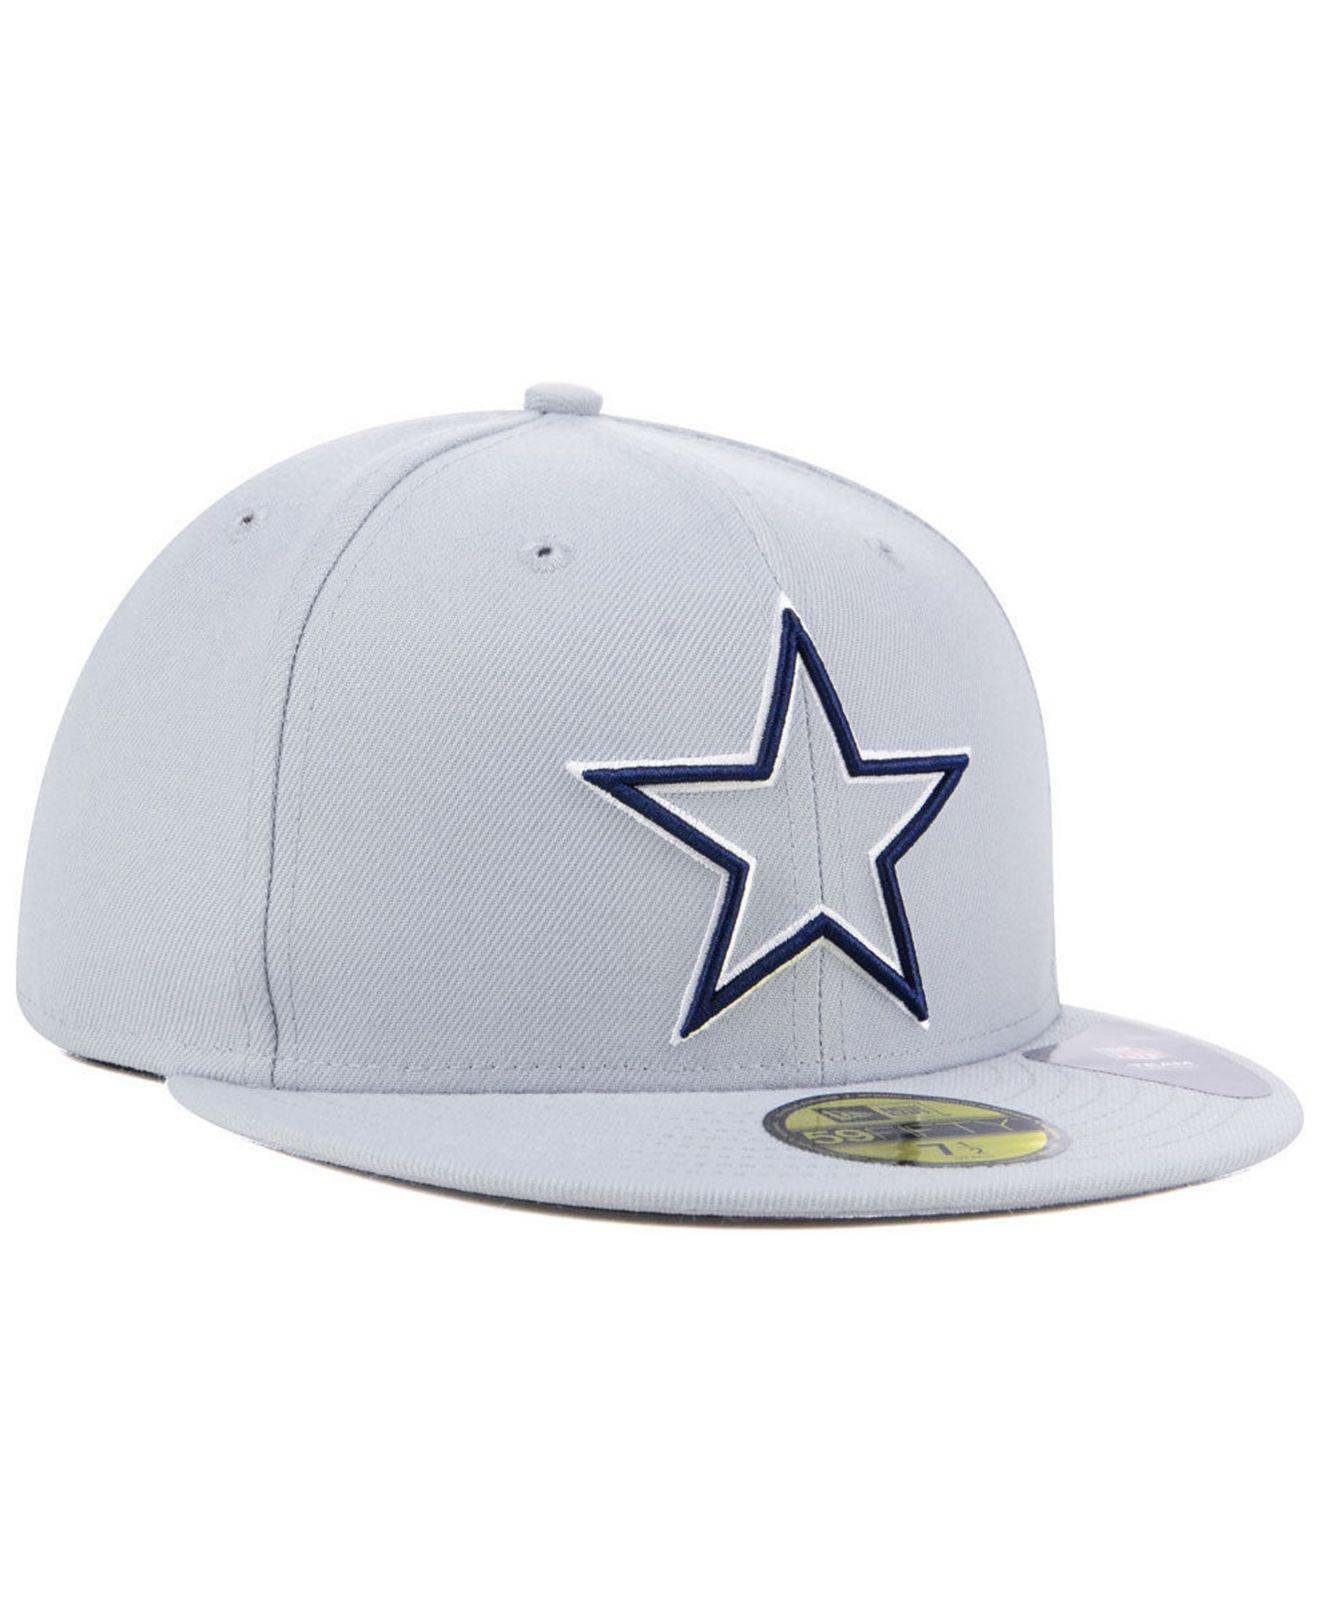 781776da6df Lyst - KTZ Dallas Cowboys Logo Elements Collection 59fifty Fitted ...